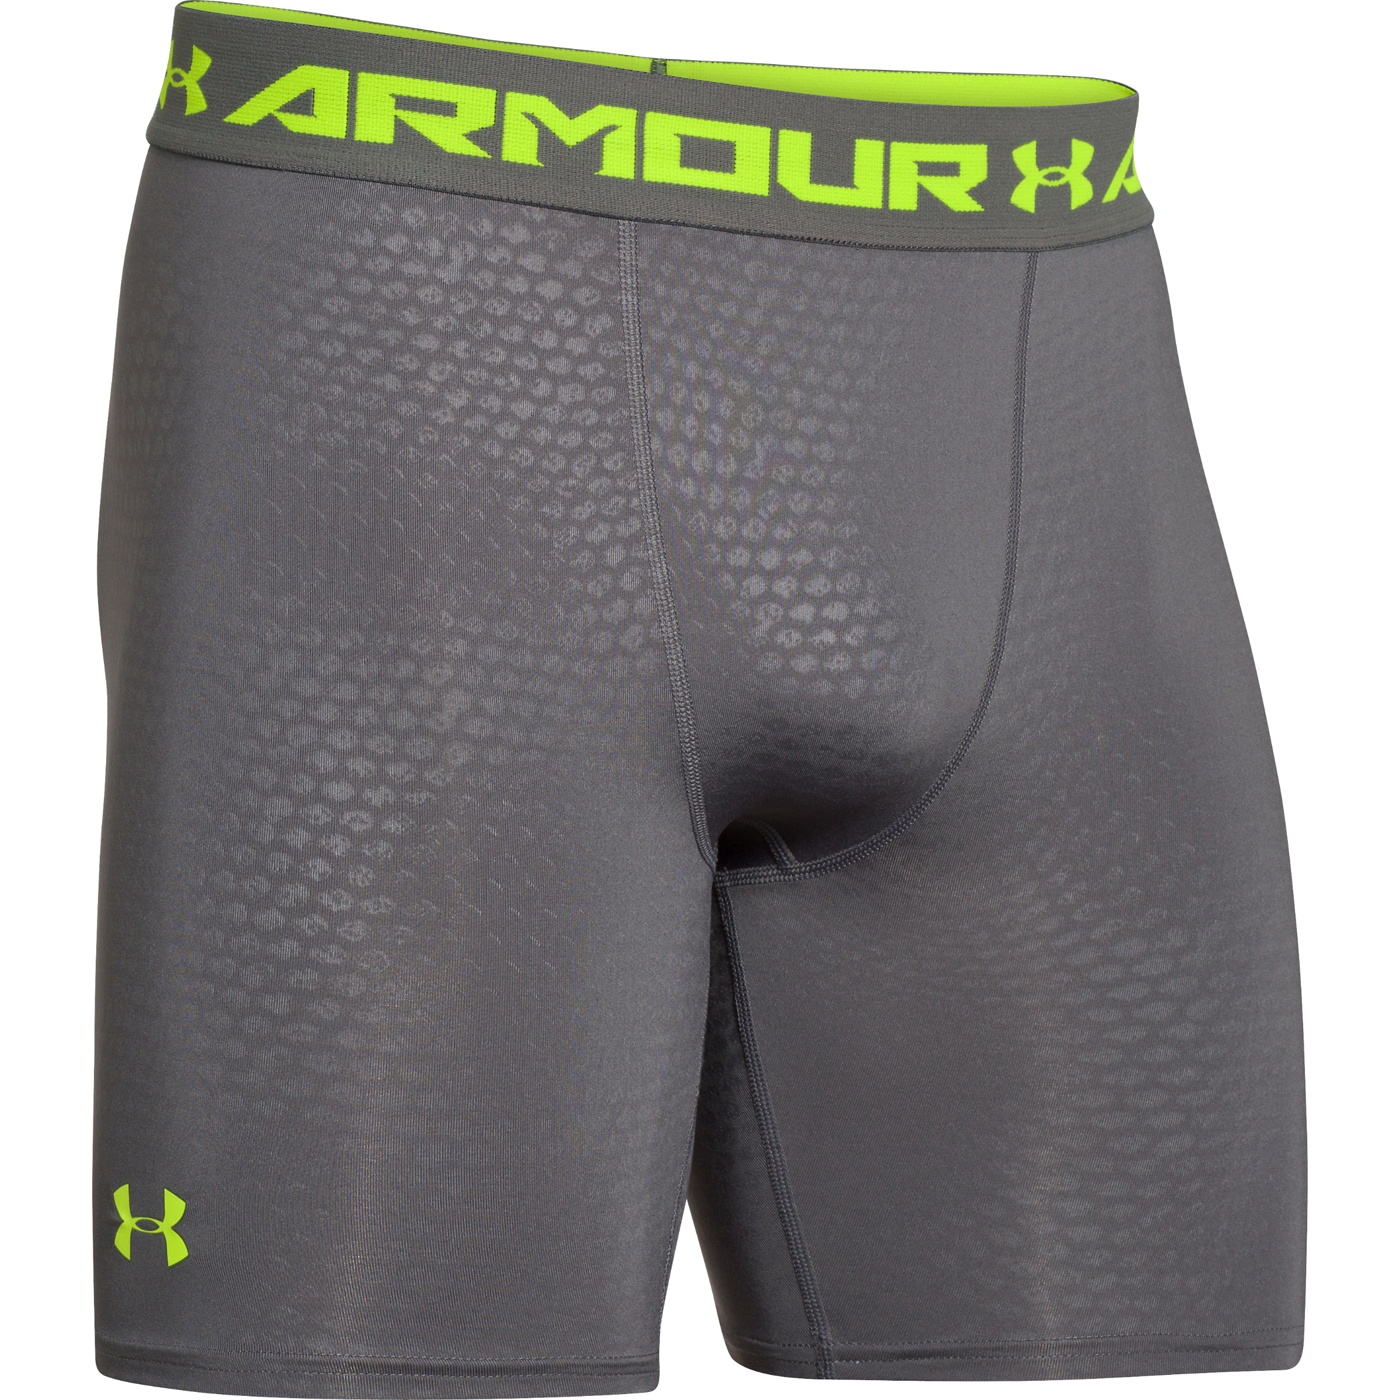 72be2698e60b2 Under Armour Heat Gear Compression Shorts | Compression+Design